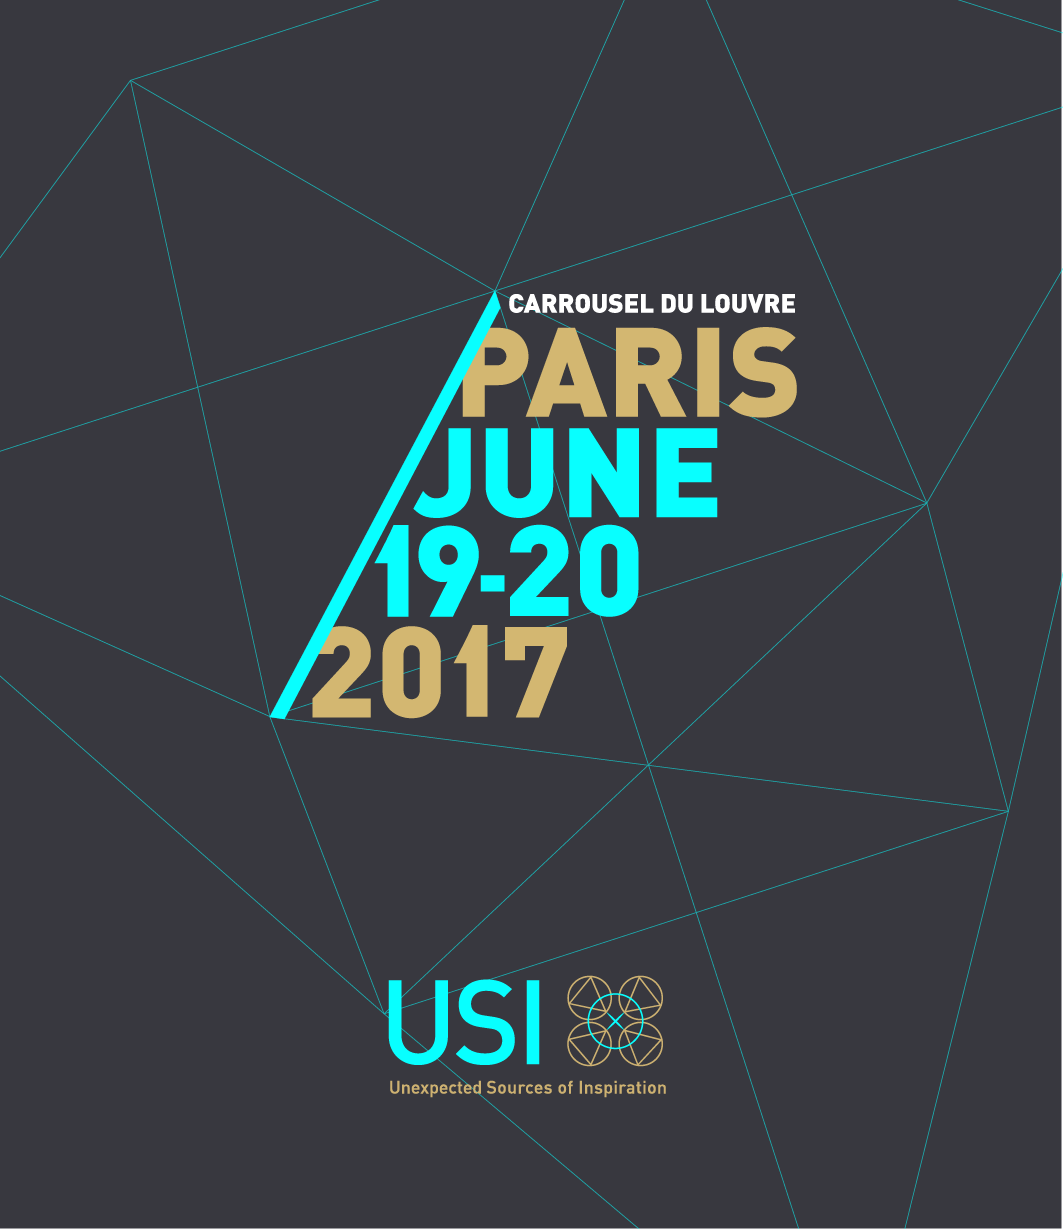 USI conference challenges, explores and questions the future of digital transformation